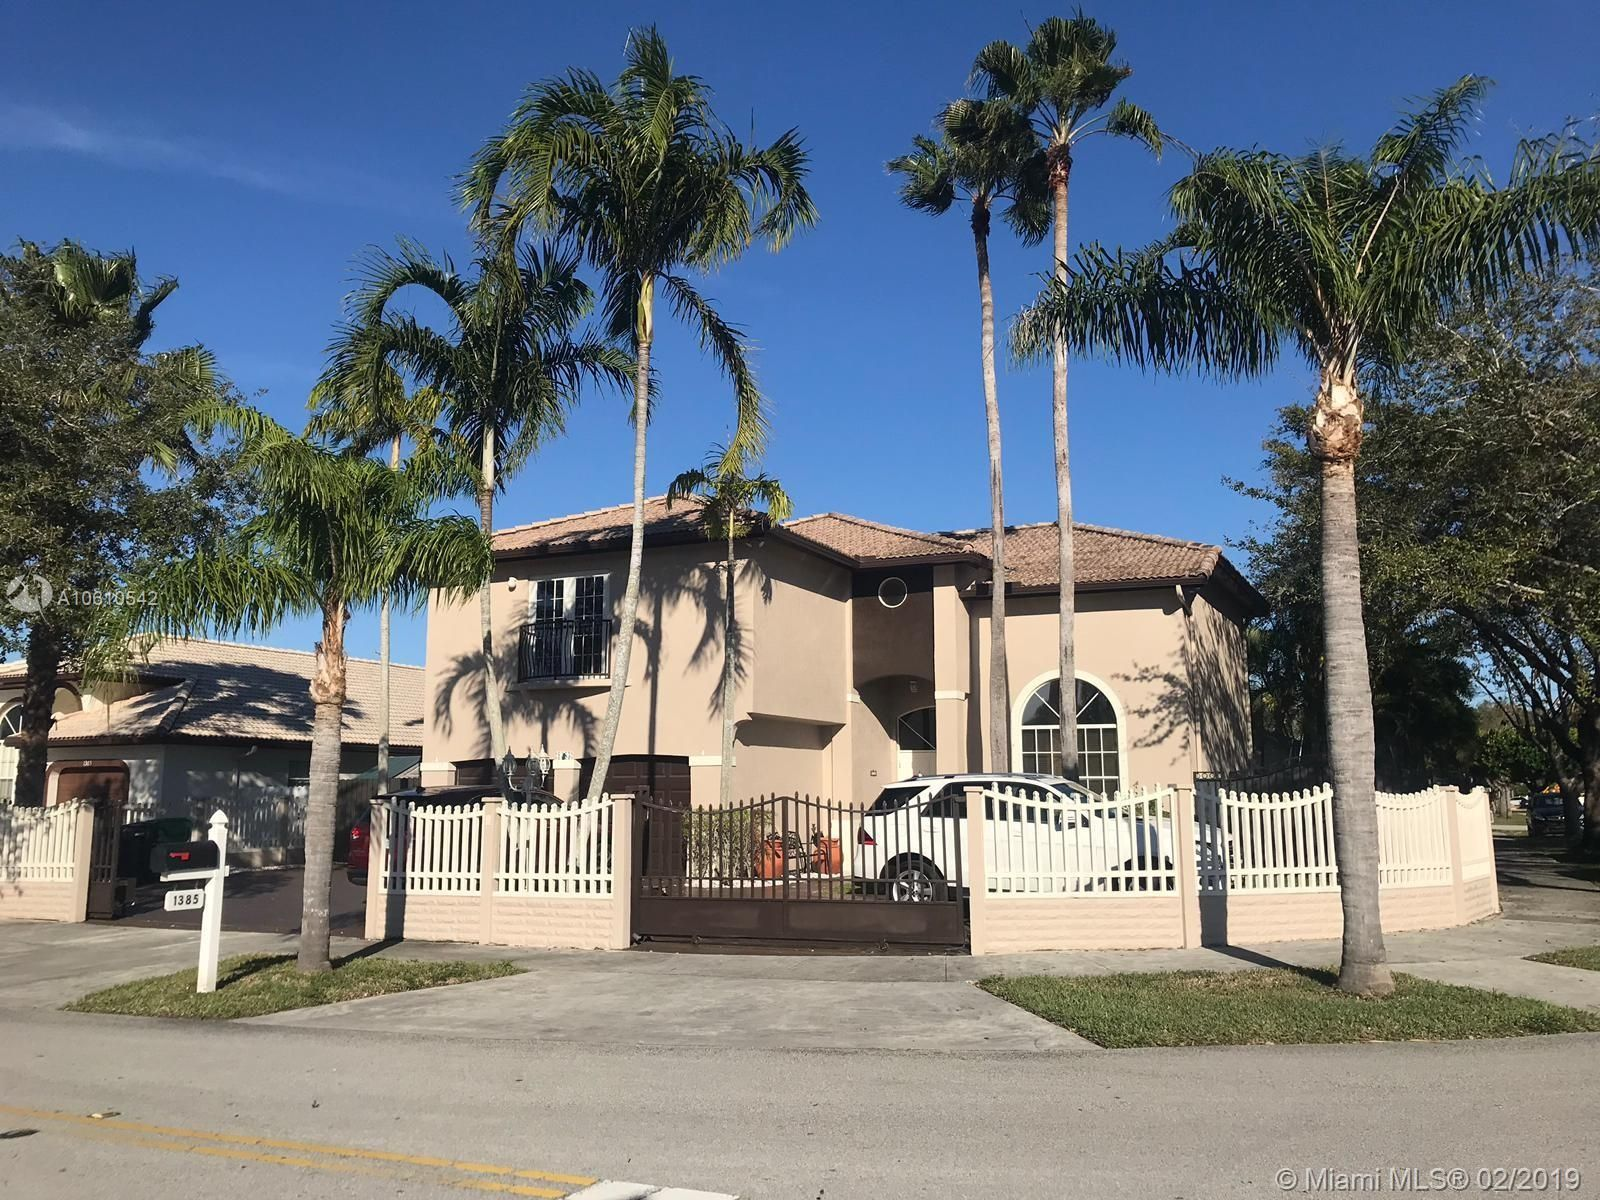 Terrific 1385 Sw 143Rd Ct Miami Fl 33184 4 Bed 3 Bath Single Family Home Mls A10610542 14 Photos Trulia Home Remodeling Inspirations Genioncuboardxyz